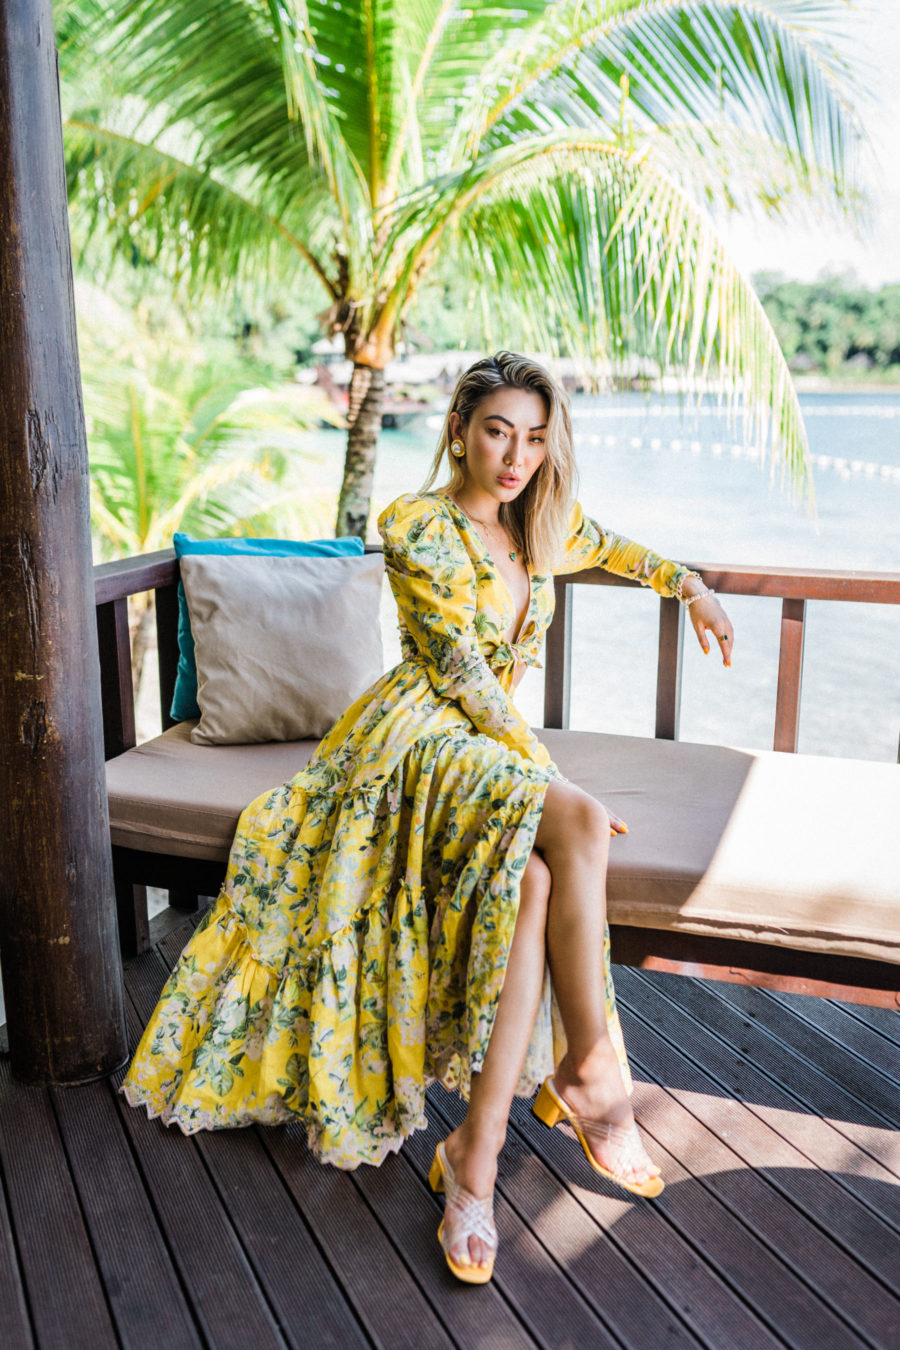 Vintage Fashion Trends - Yellow Floral dress, yellow square toe sandals // Jessica Wang - Notjessfashion.com